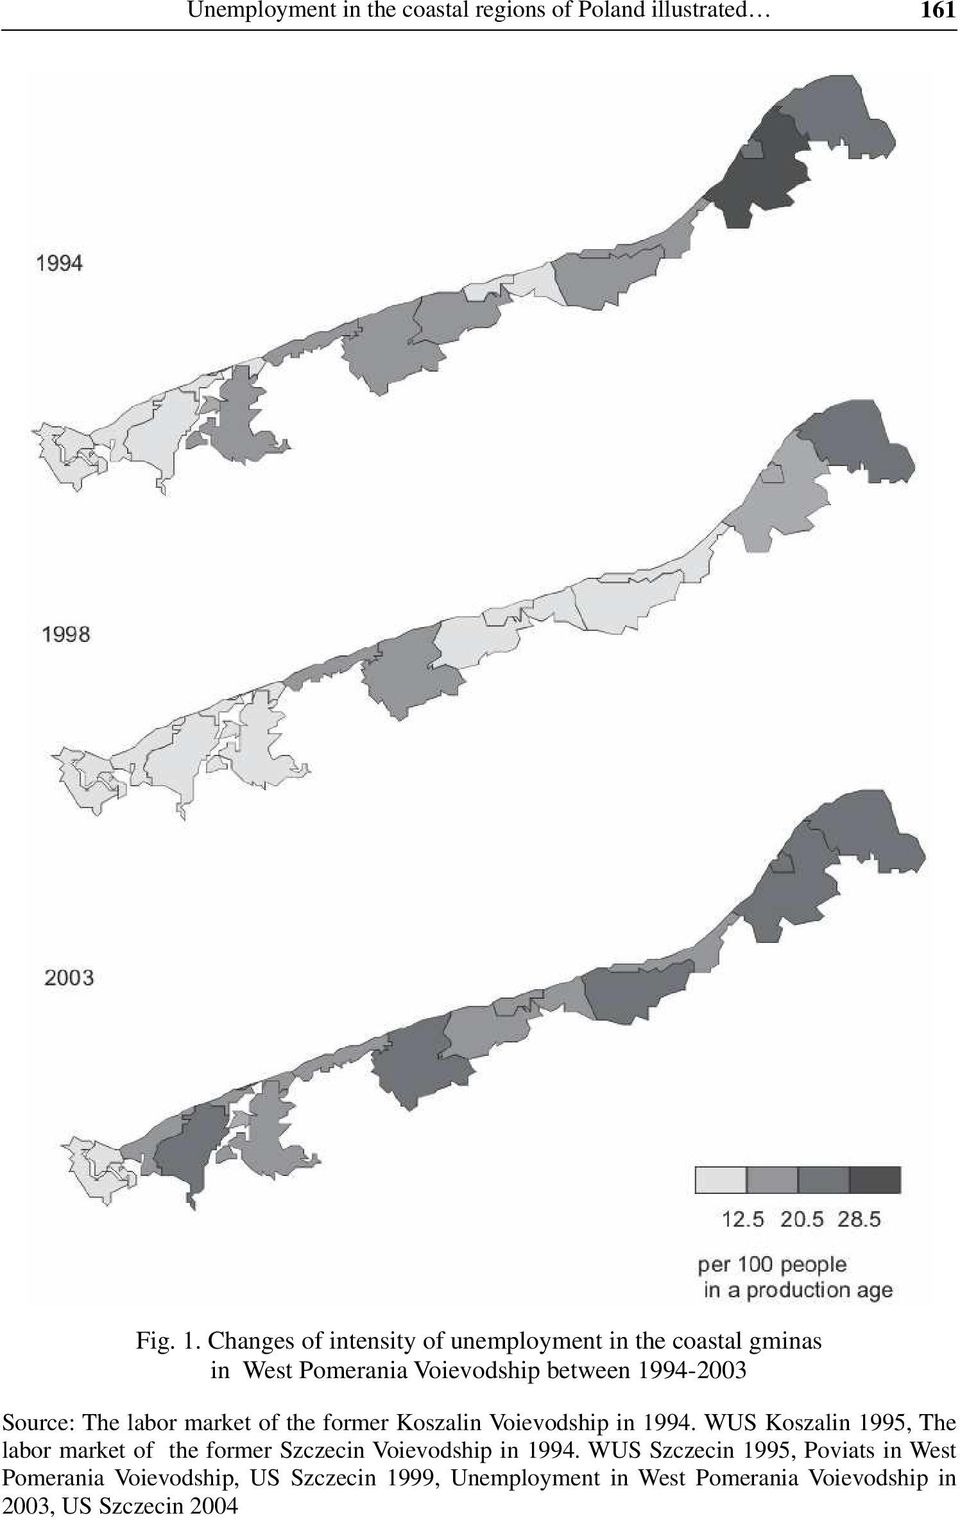 Changes of intensity of unemployment in the coastal gminas in West Pomerania Voievodship between 1994-2003 Source: